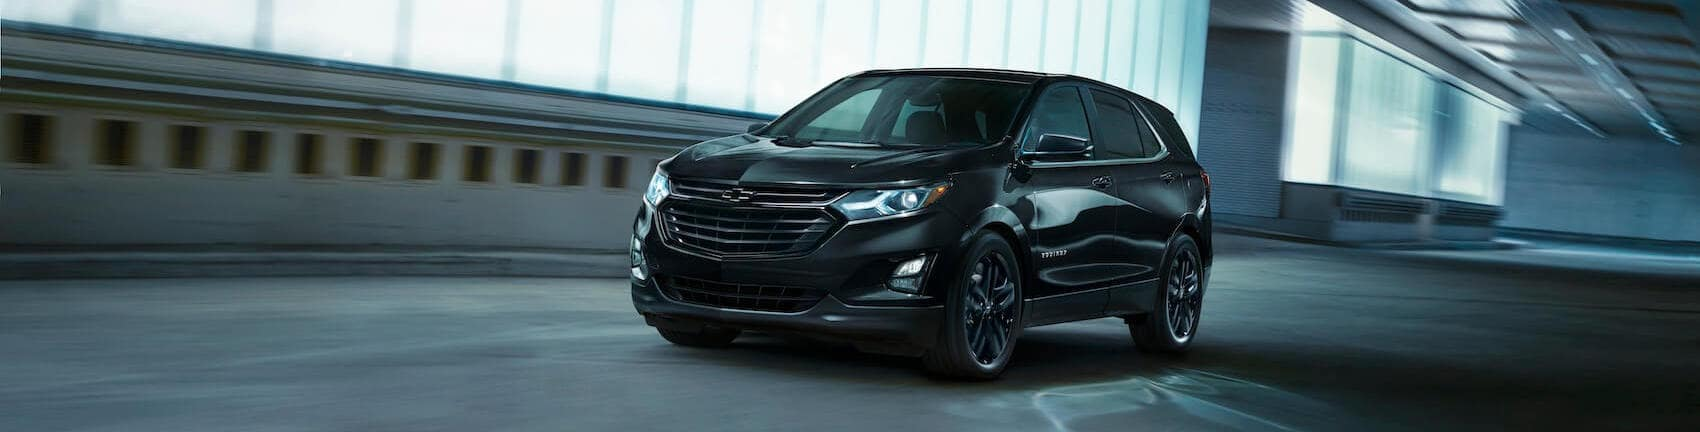 CHEVY EQUINOX SAFETY RATINGS